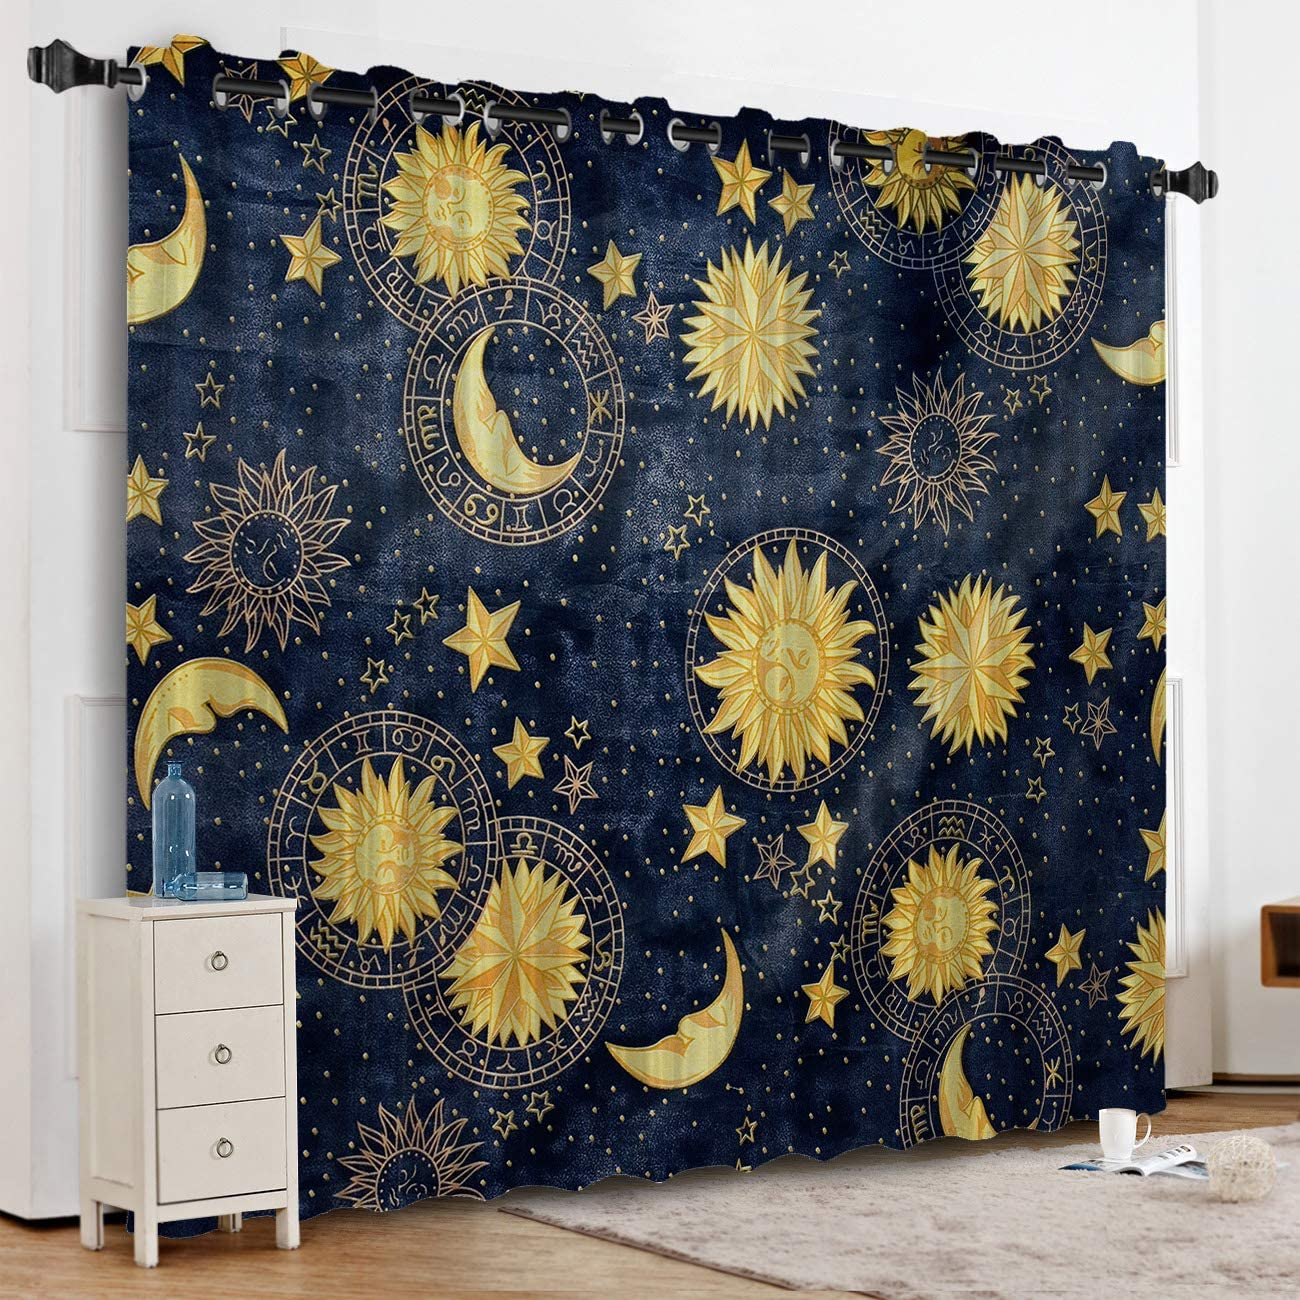 Prime-Home Window Treatments Ranking TOP13 service Curtains Kitchen Gromment Bl Drapes